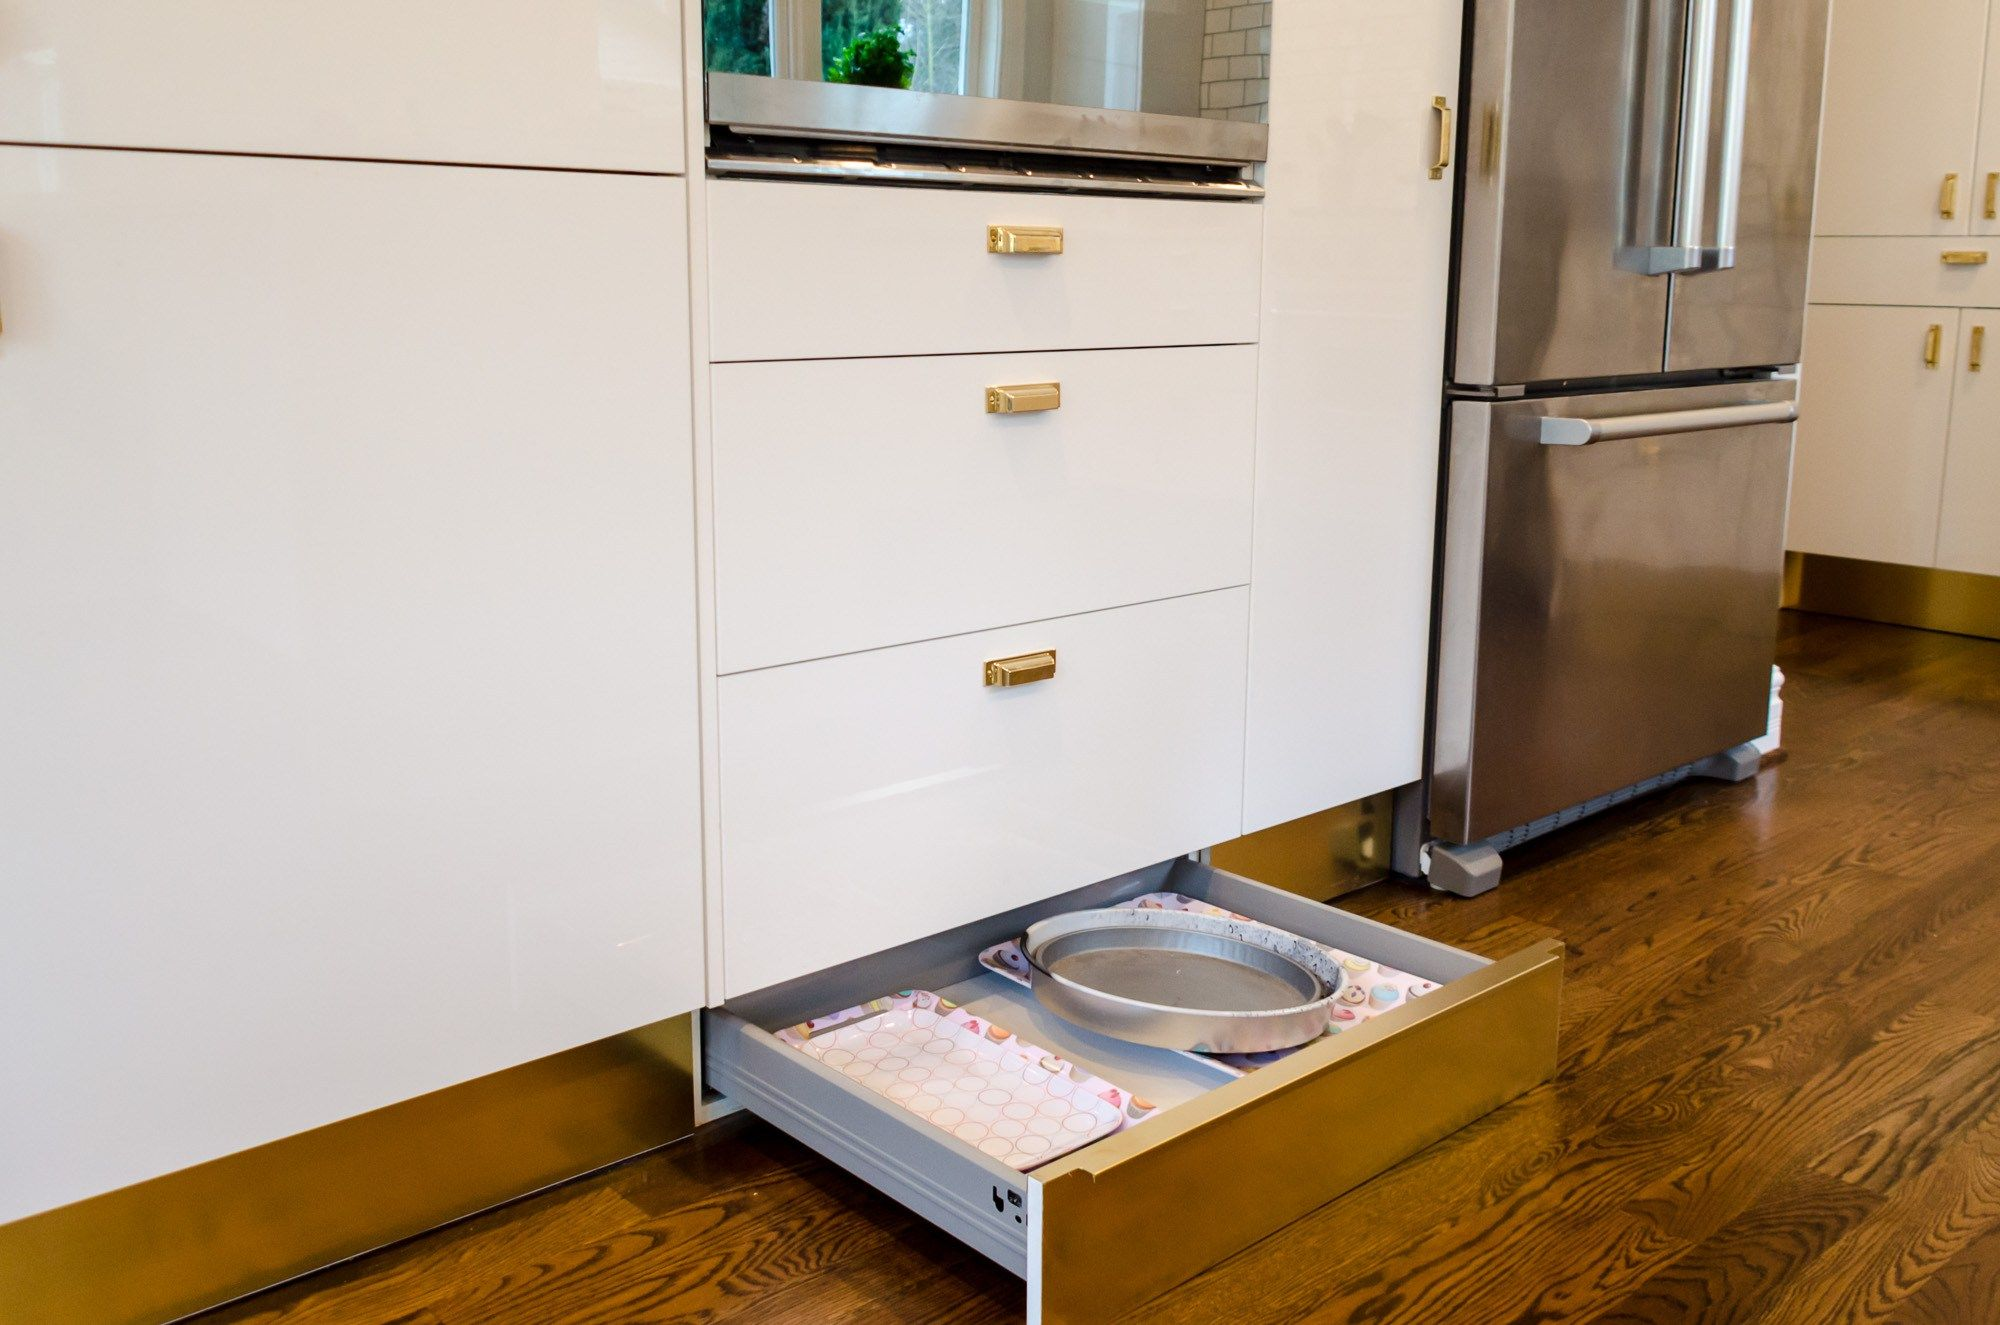 Image Result For Ikea Cabinets Legs No Toe Kick Kitchen Cabinets Trendy Kitchen Kitchen Contractors